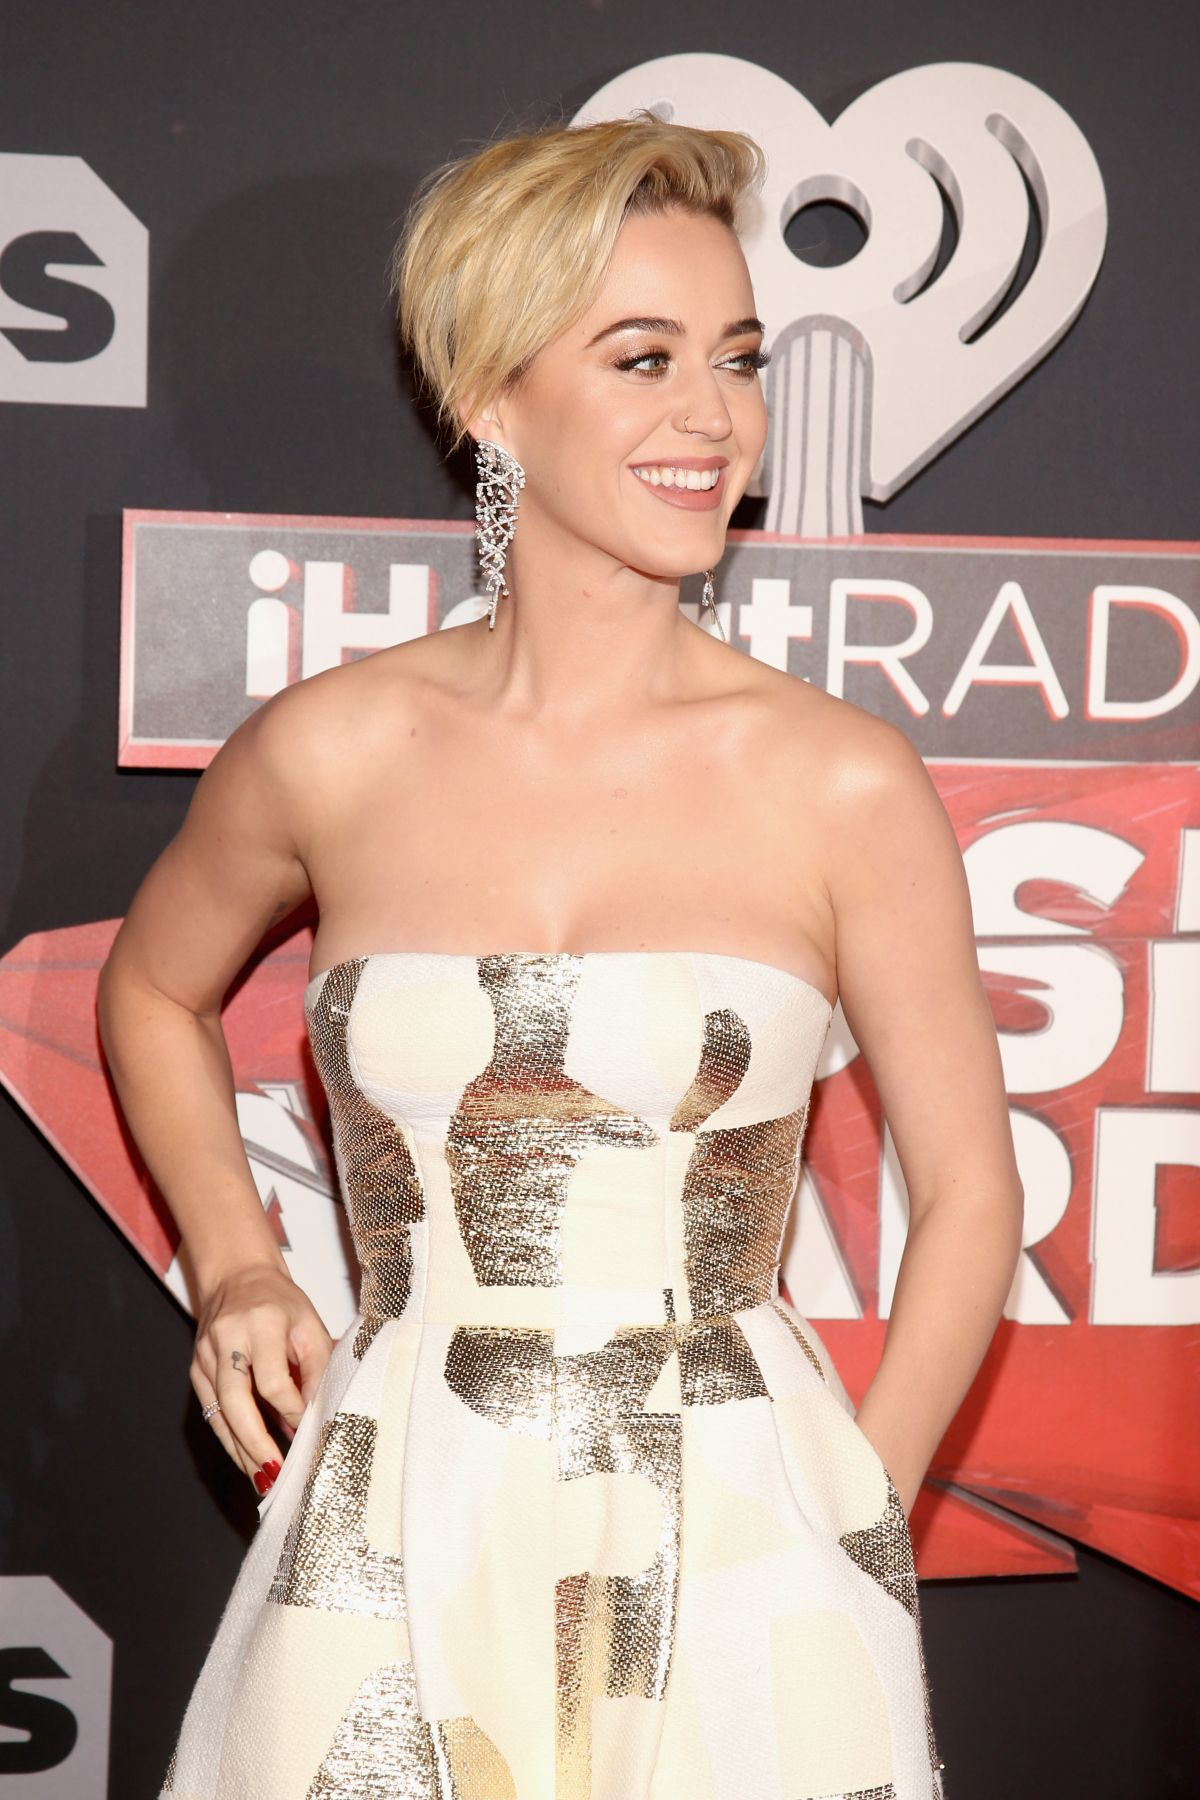 KATY PERRY at 2017 iHeartRadio Music Awards in Los Angeles 03/05/2017